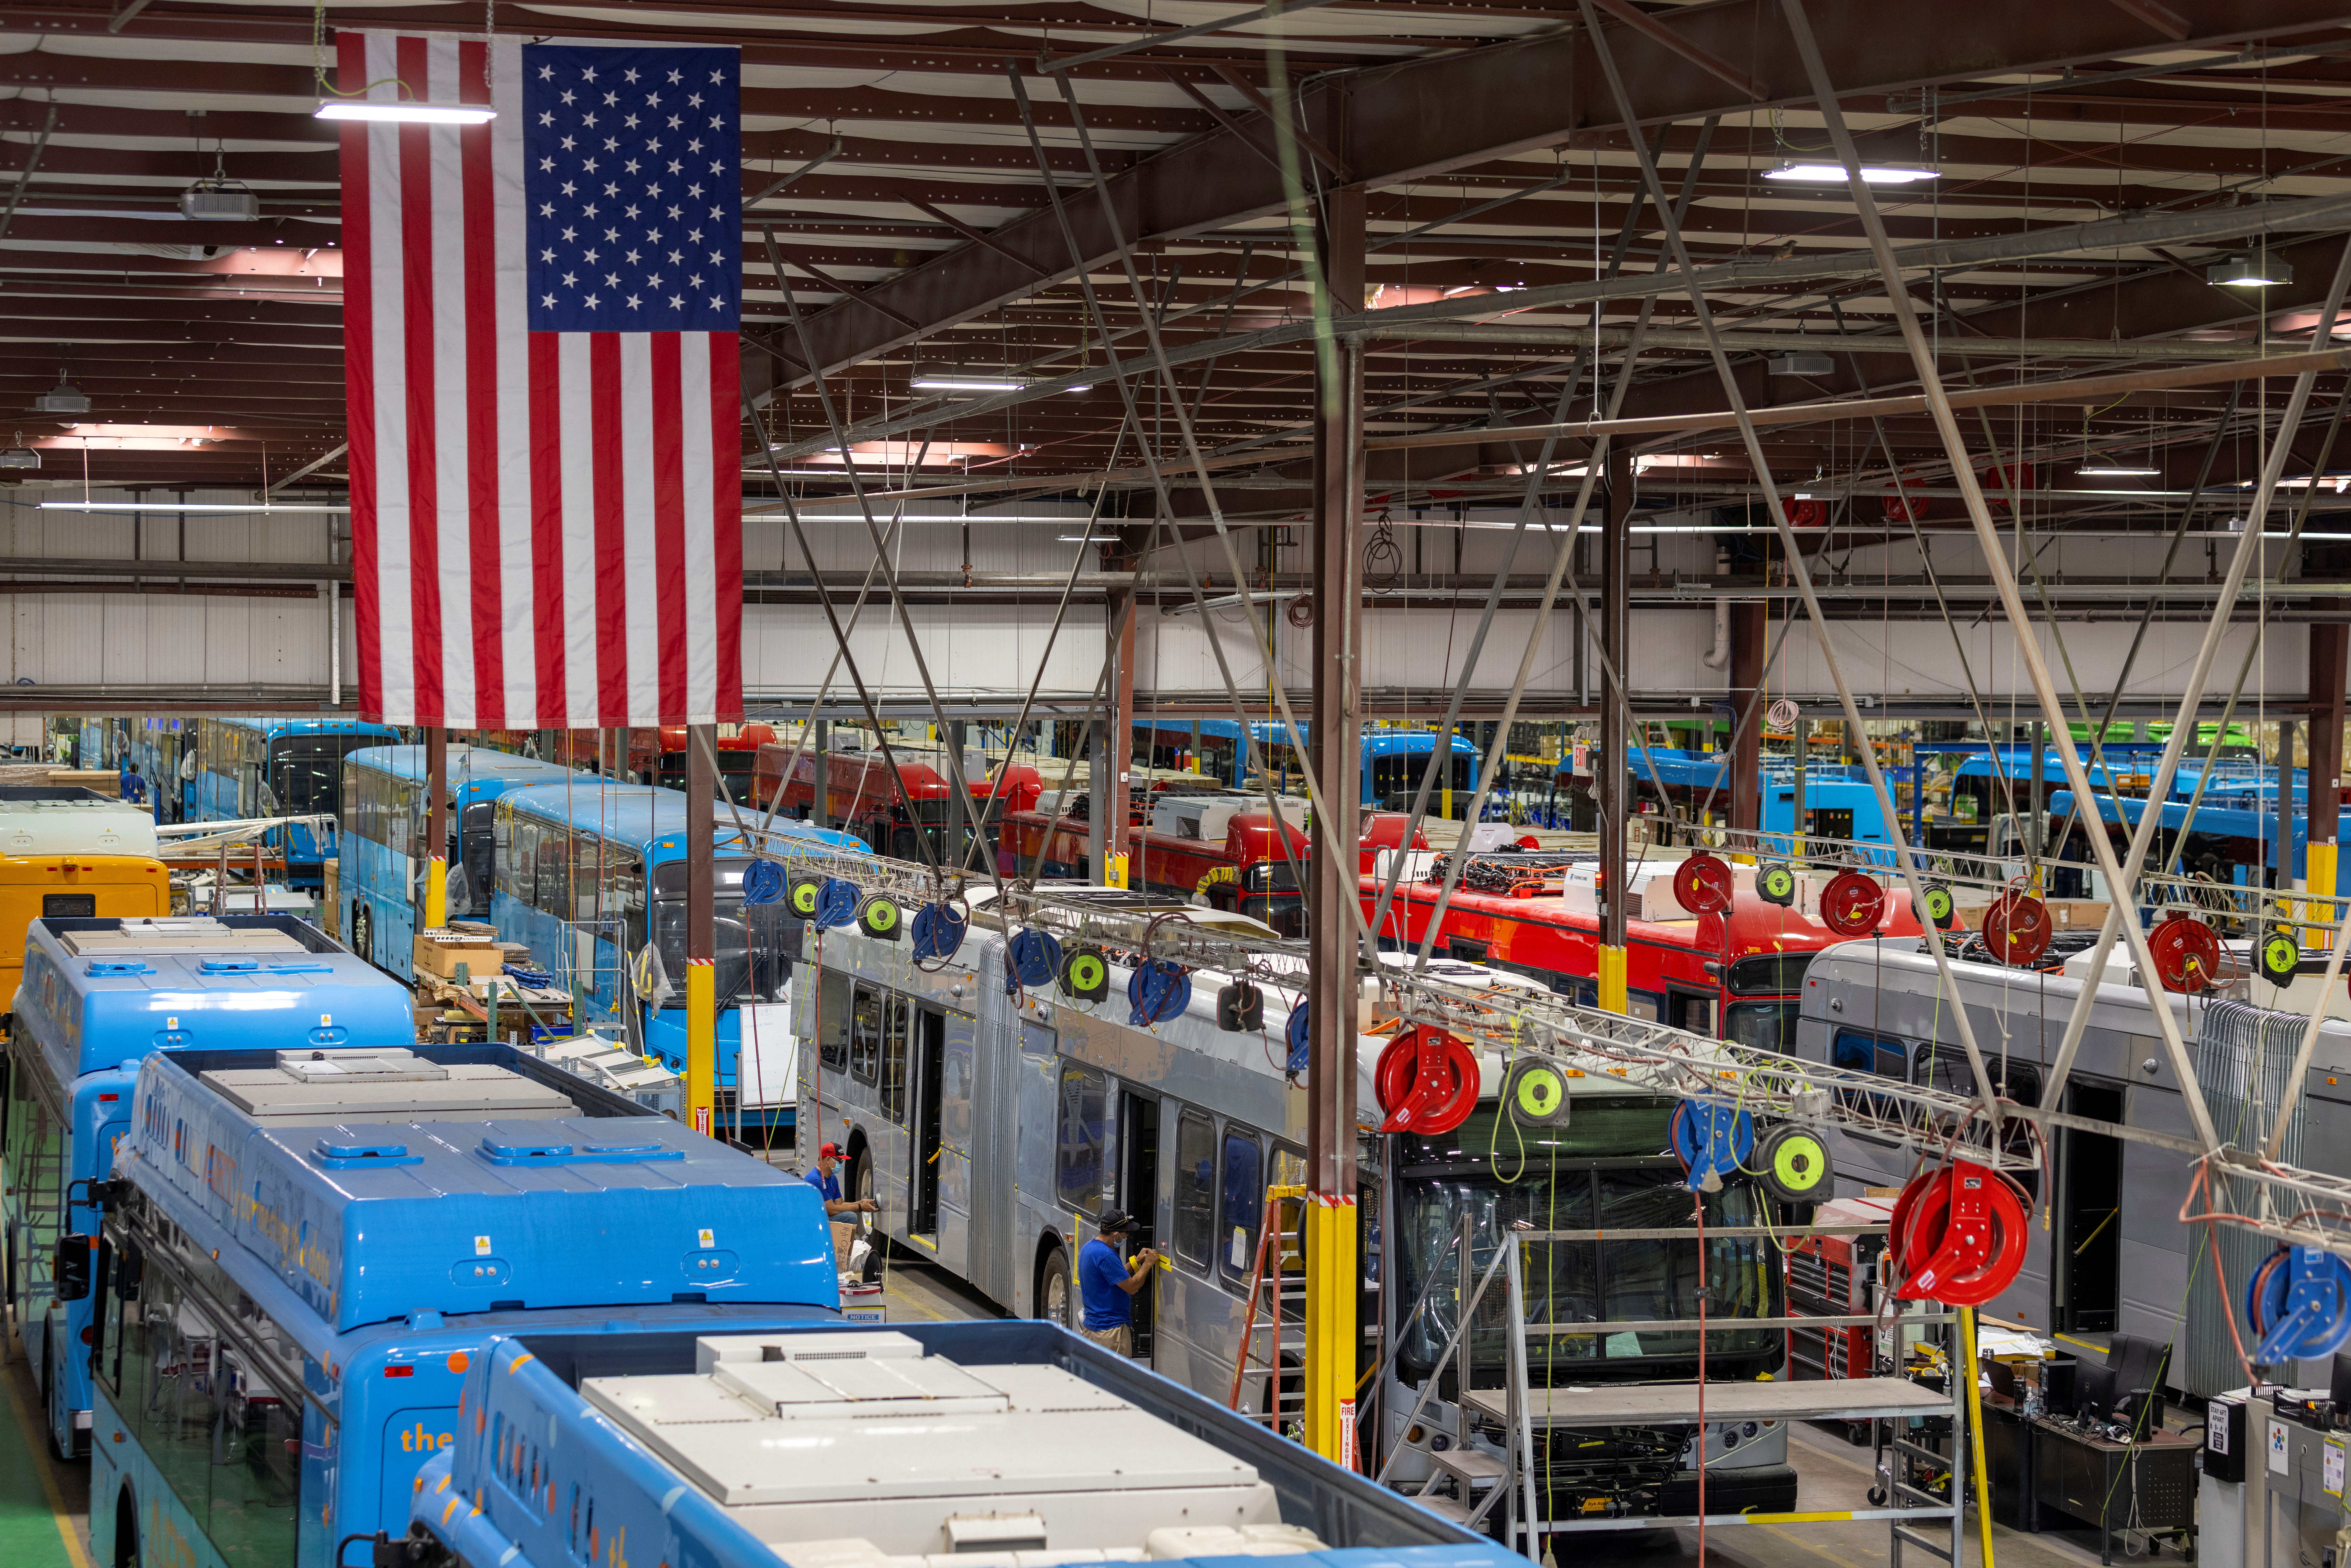 Buses are shown being built at the BYD electric bus factory in Lancaster, California. REUTERS/Mike Blake